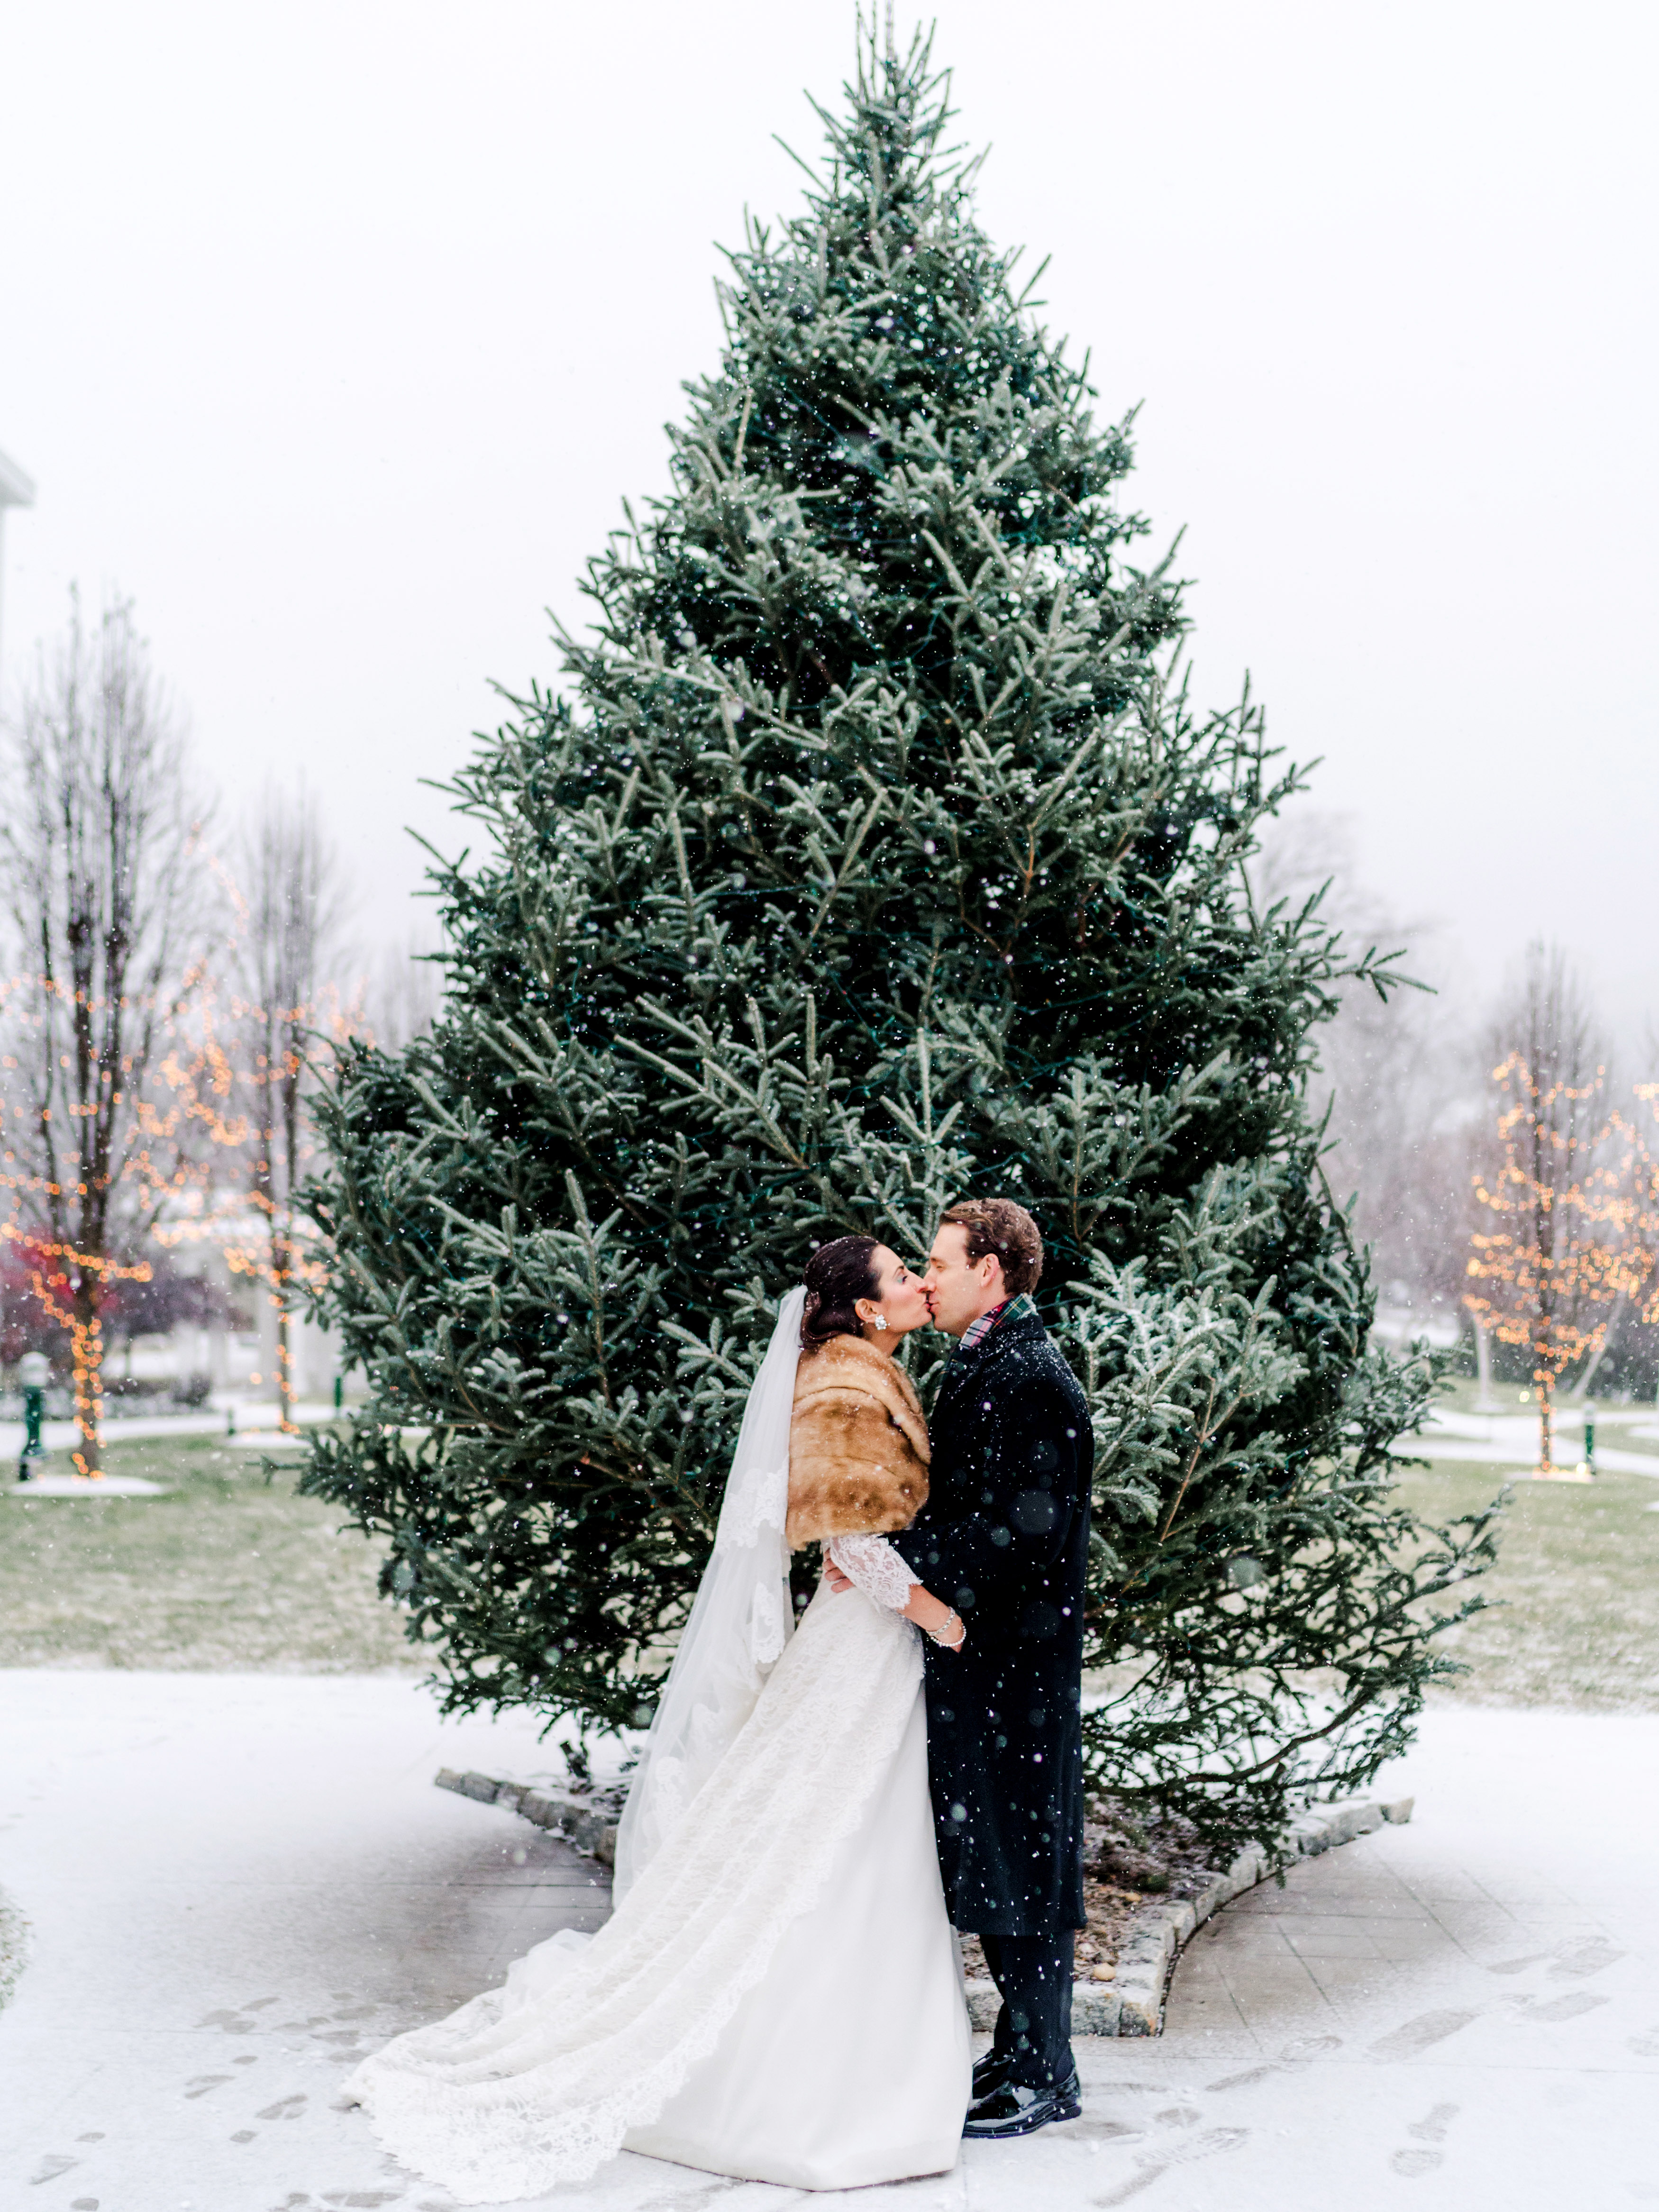 lauren christian christmas wedding couple outside kissing evergreen tree snowing